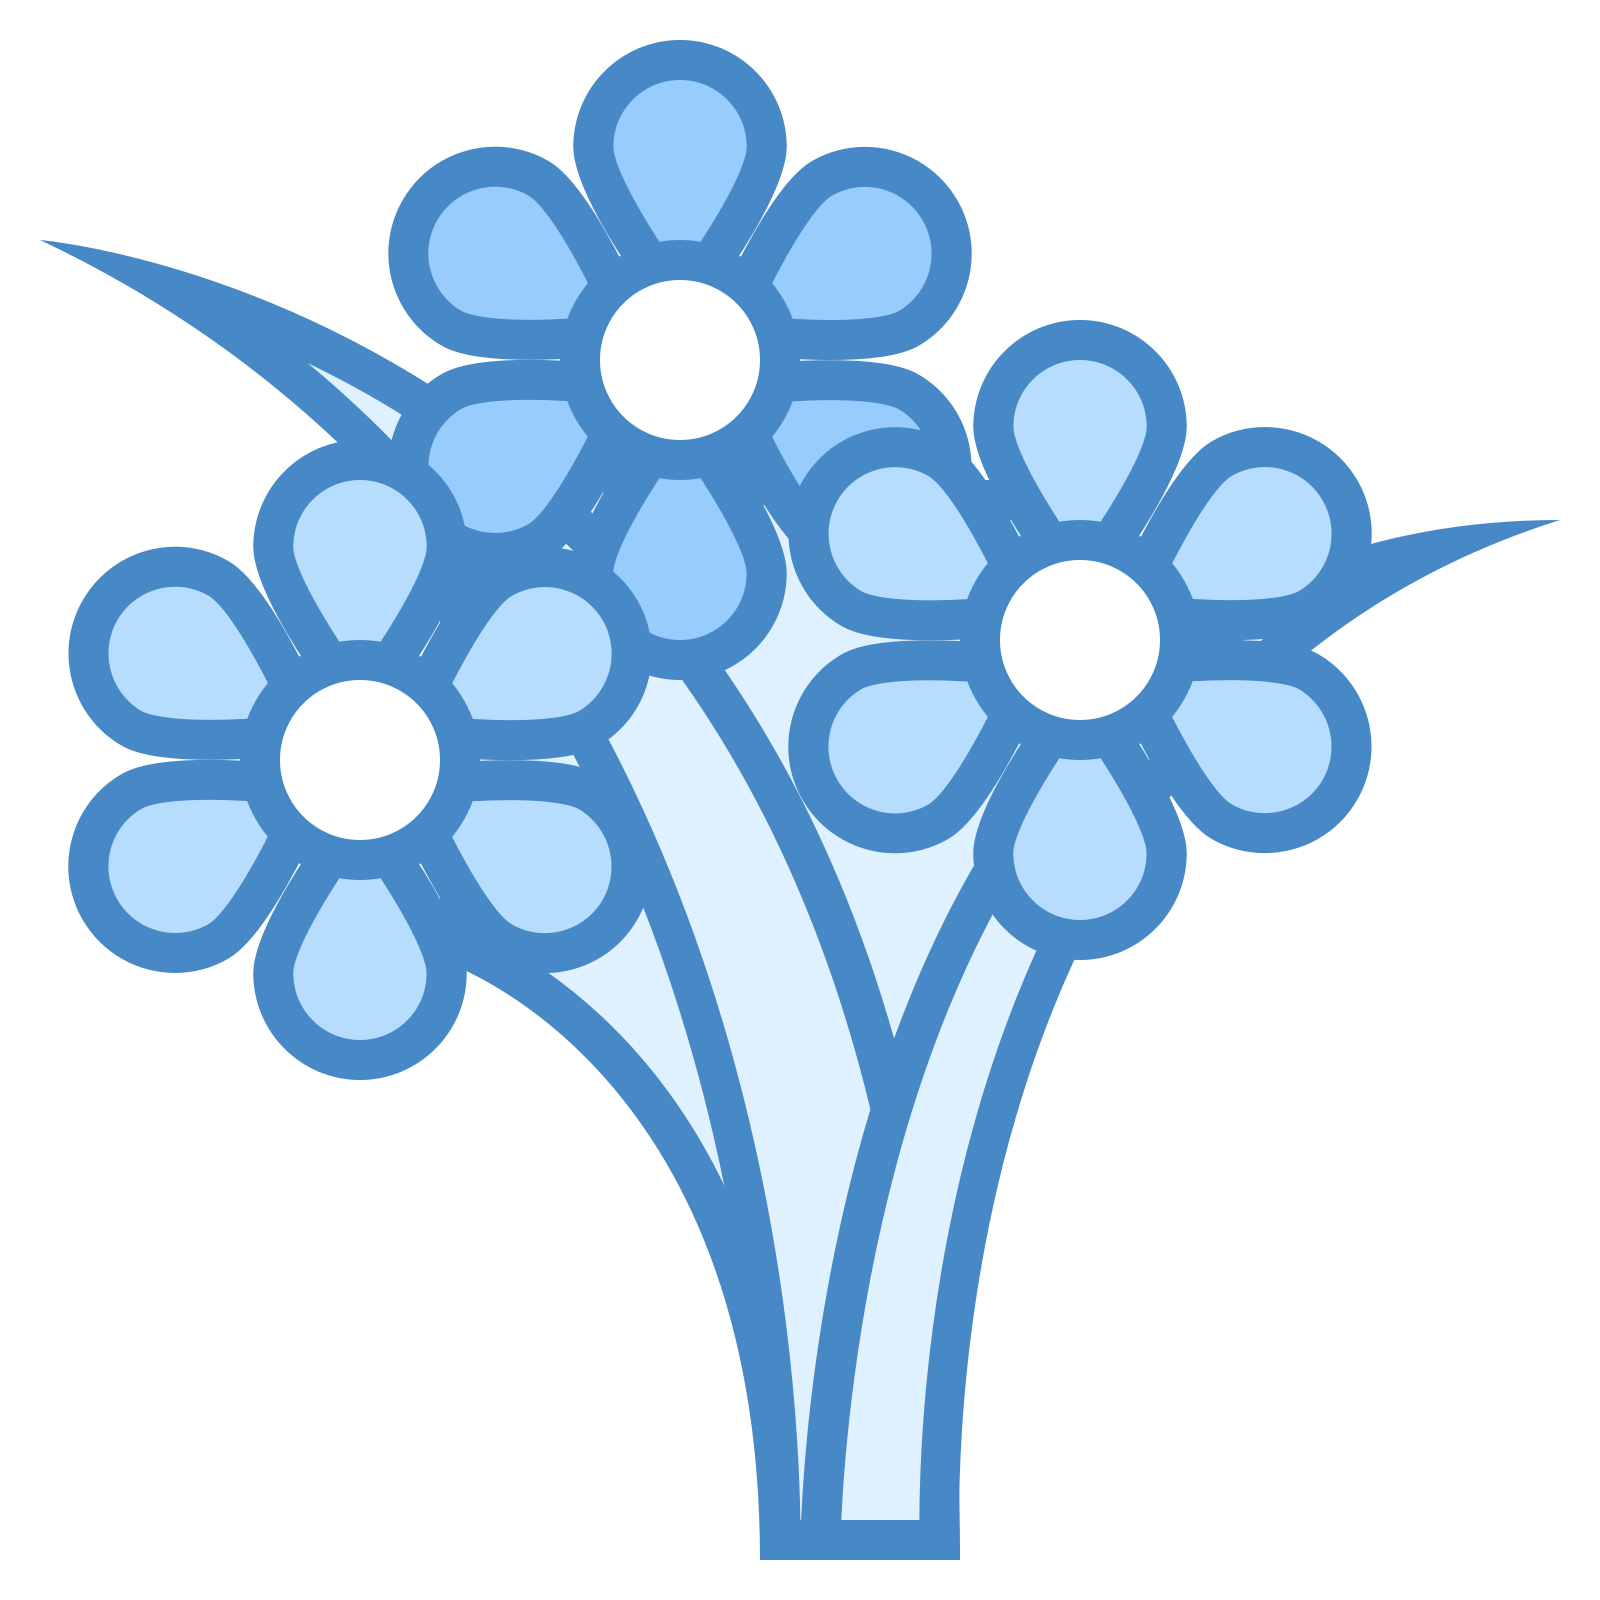 Bouquet vector png. Flower icon free download